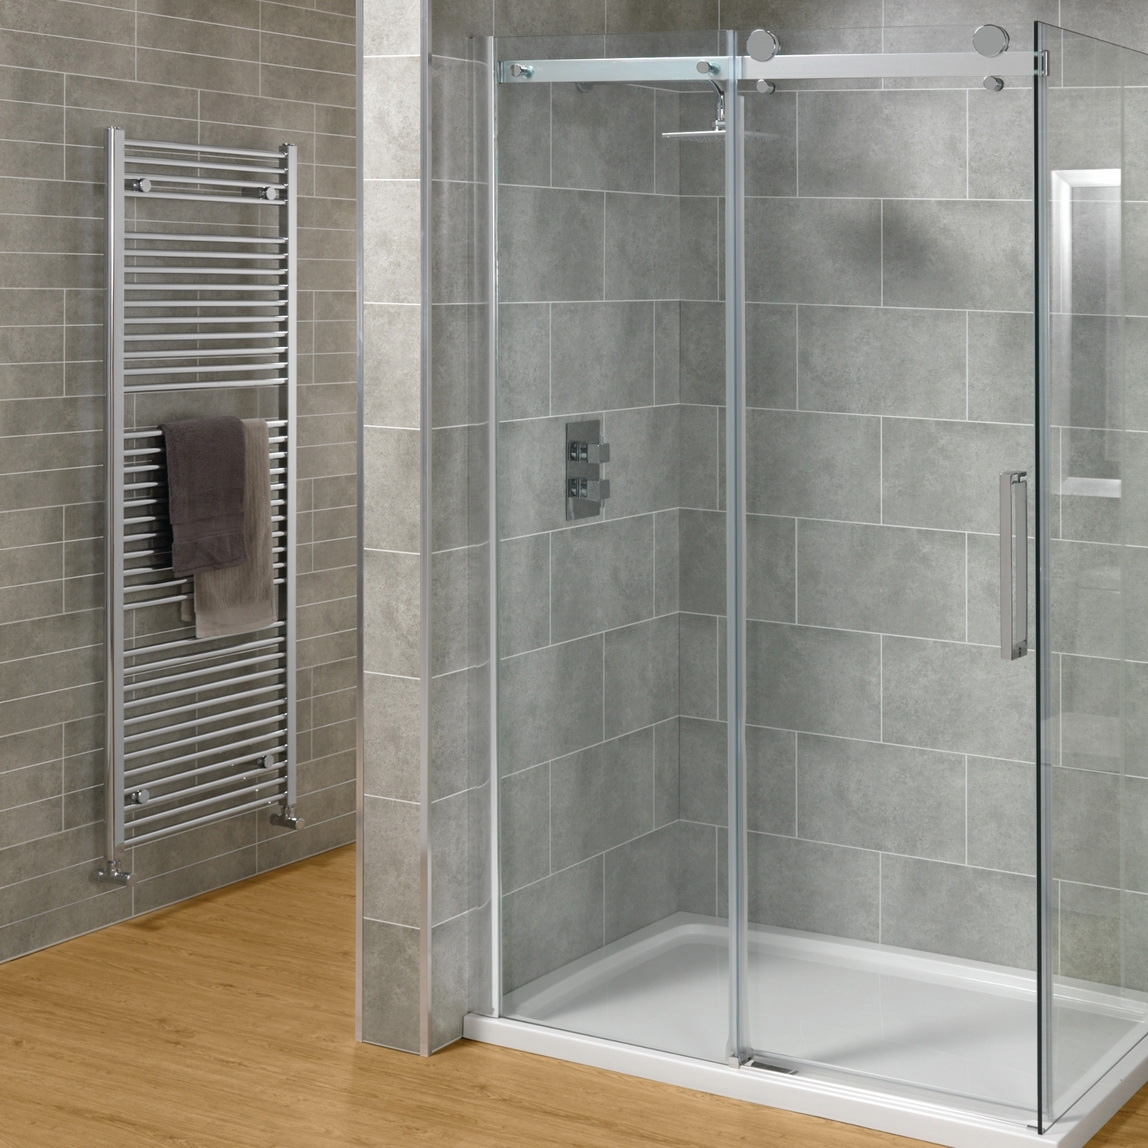 Glass Shower Doors For Bathroom